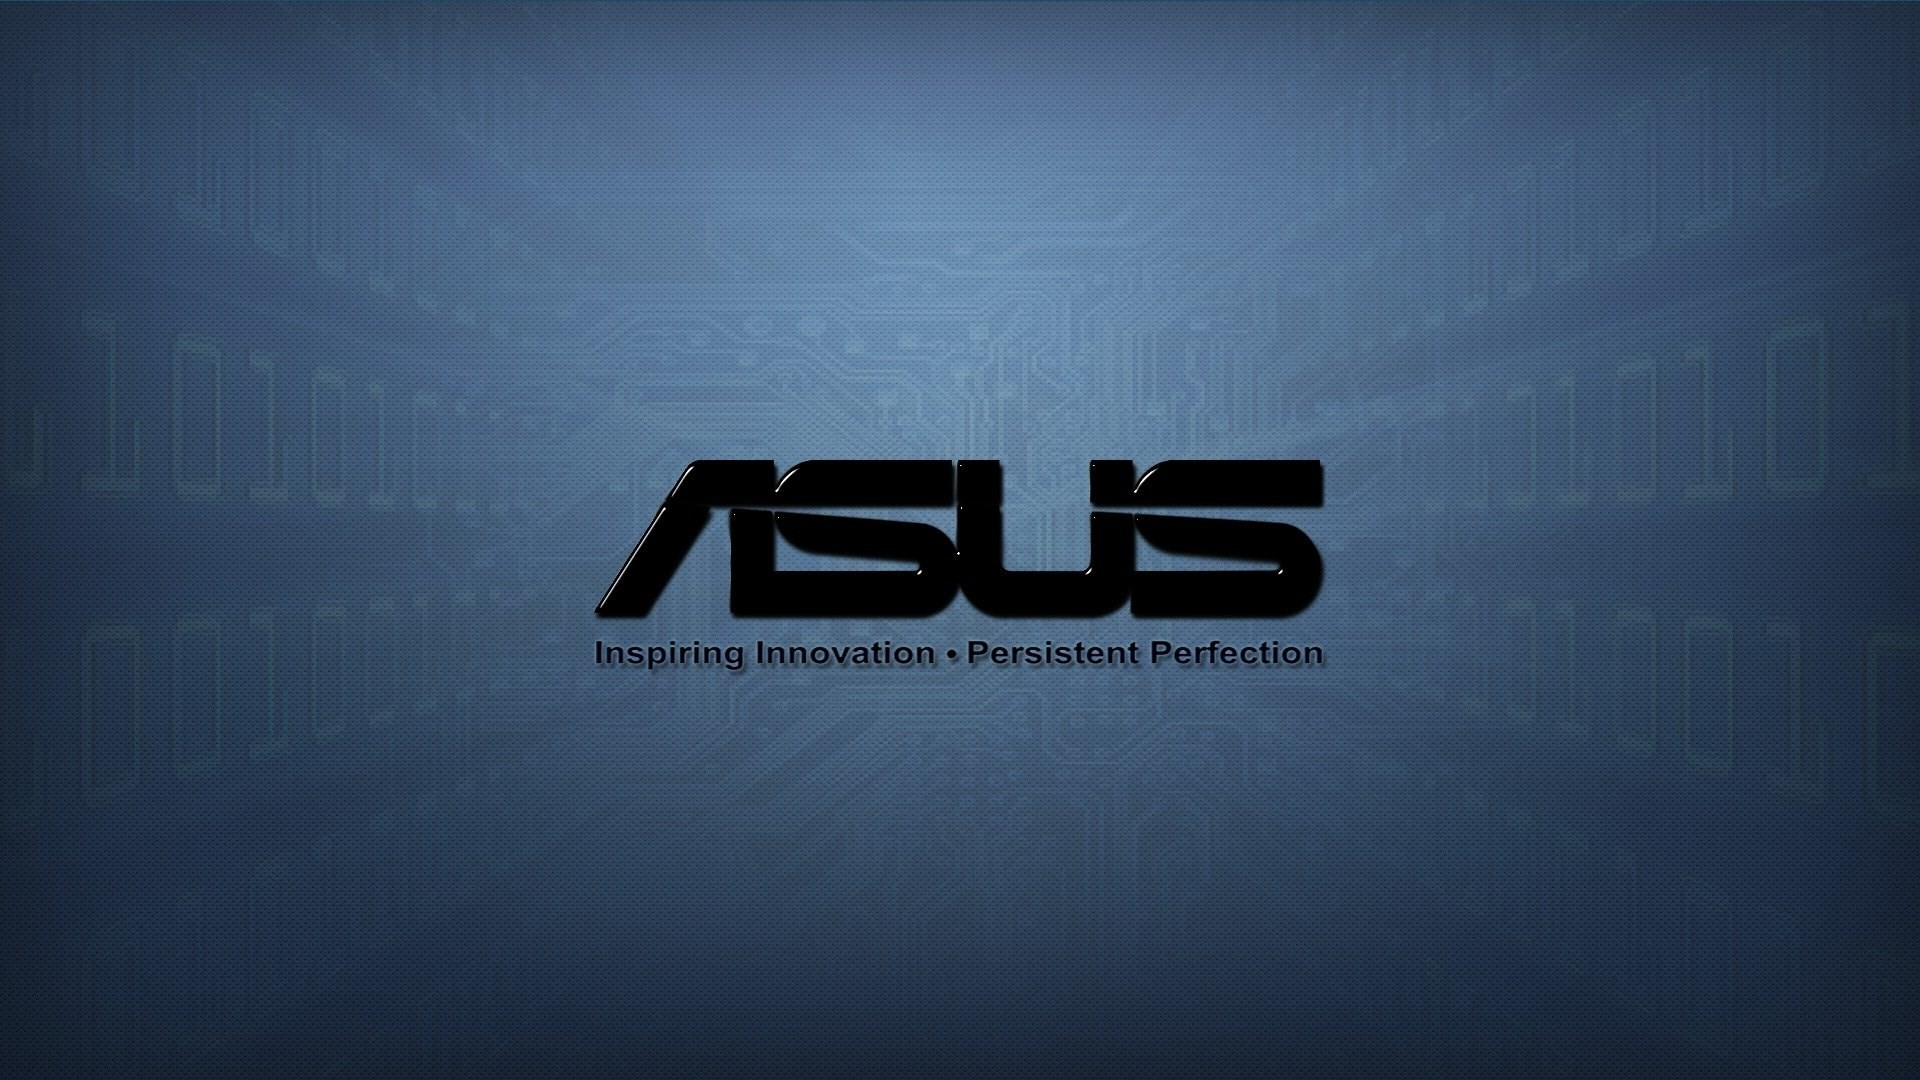 asus picture – Background hd, 469 kB – Colvin Young